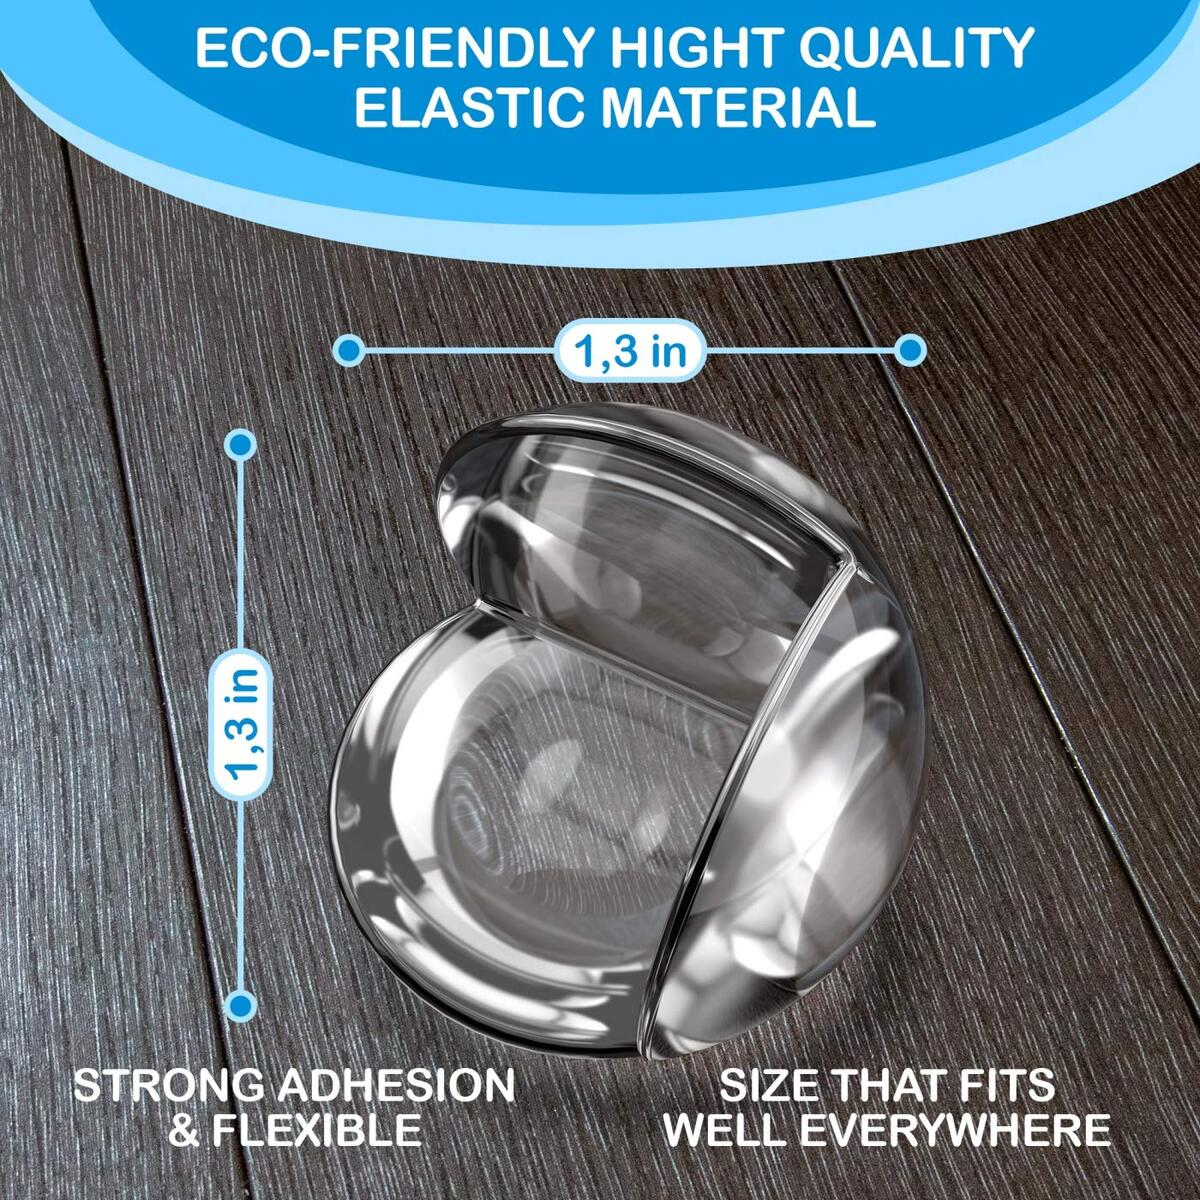 Corner Protector Baby (12 Pack +Gift) Baby Proof Corner Guards - Furniture Corner Protectors Child Safety - Sharp Edge Protector - Table Corner Protectors for Kids Proofing Coffee Table Bumpers Clear